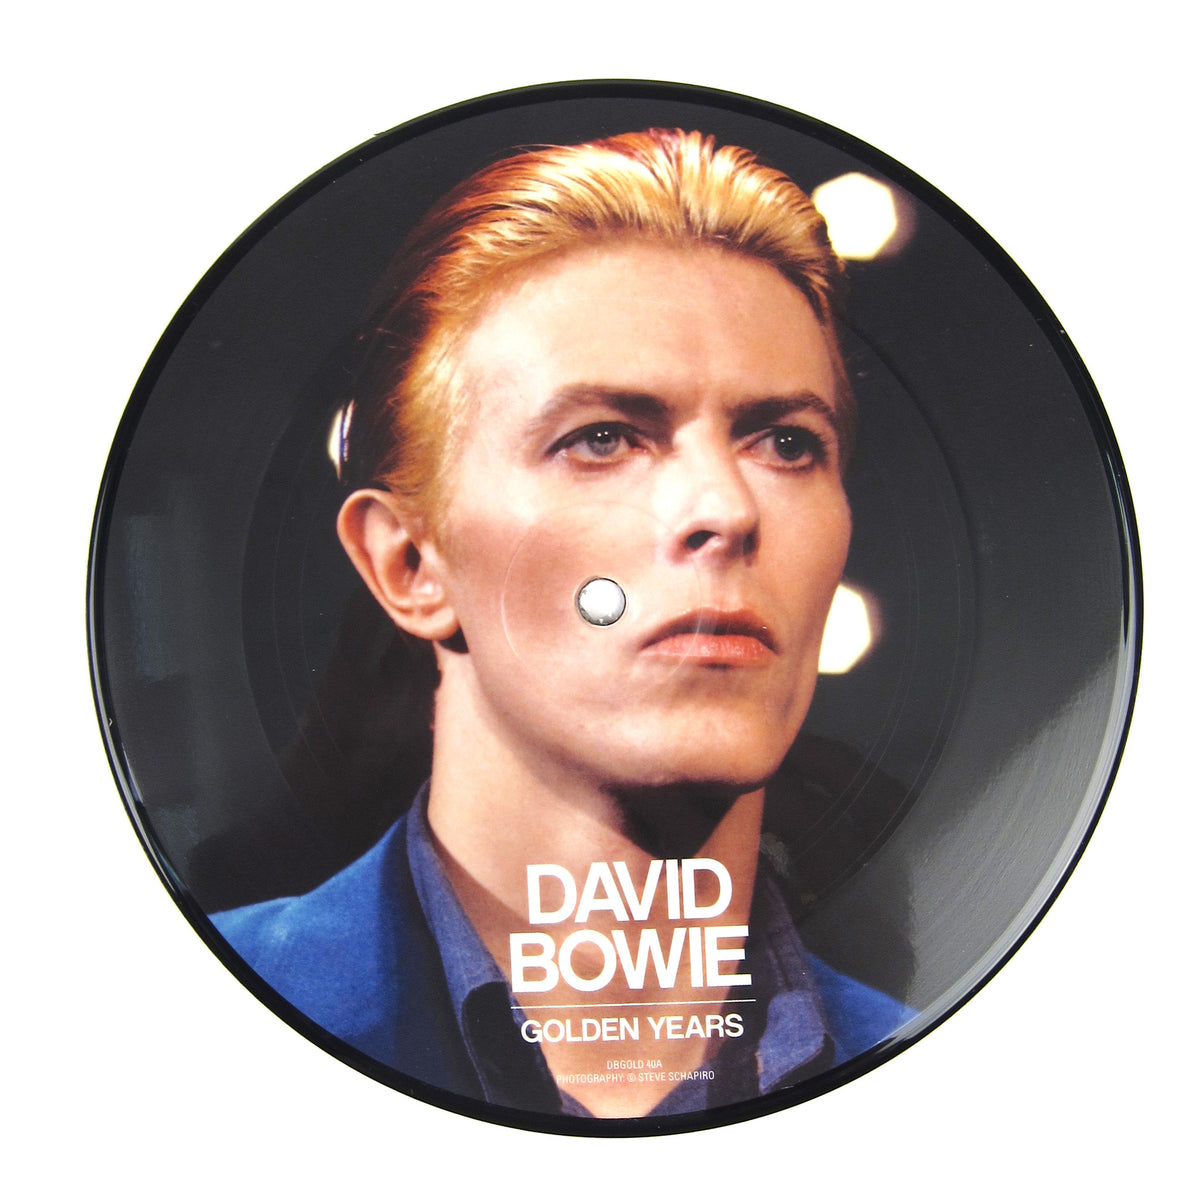 David Bowie: Golden Years 40th Anniversary (Pic Disc) Vinyl 7""